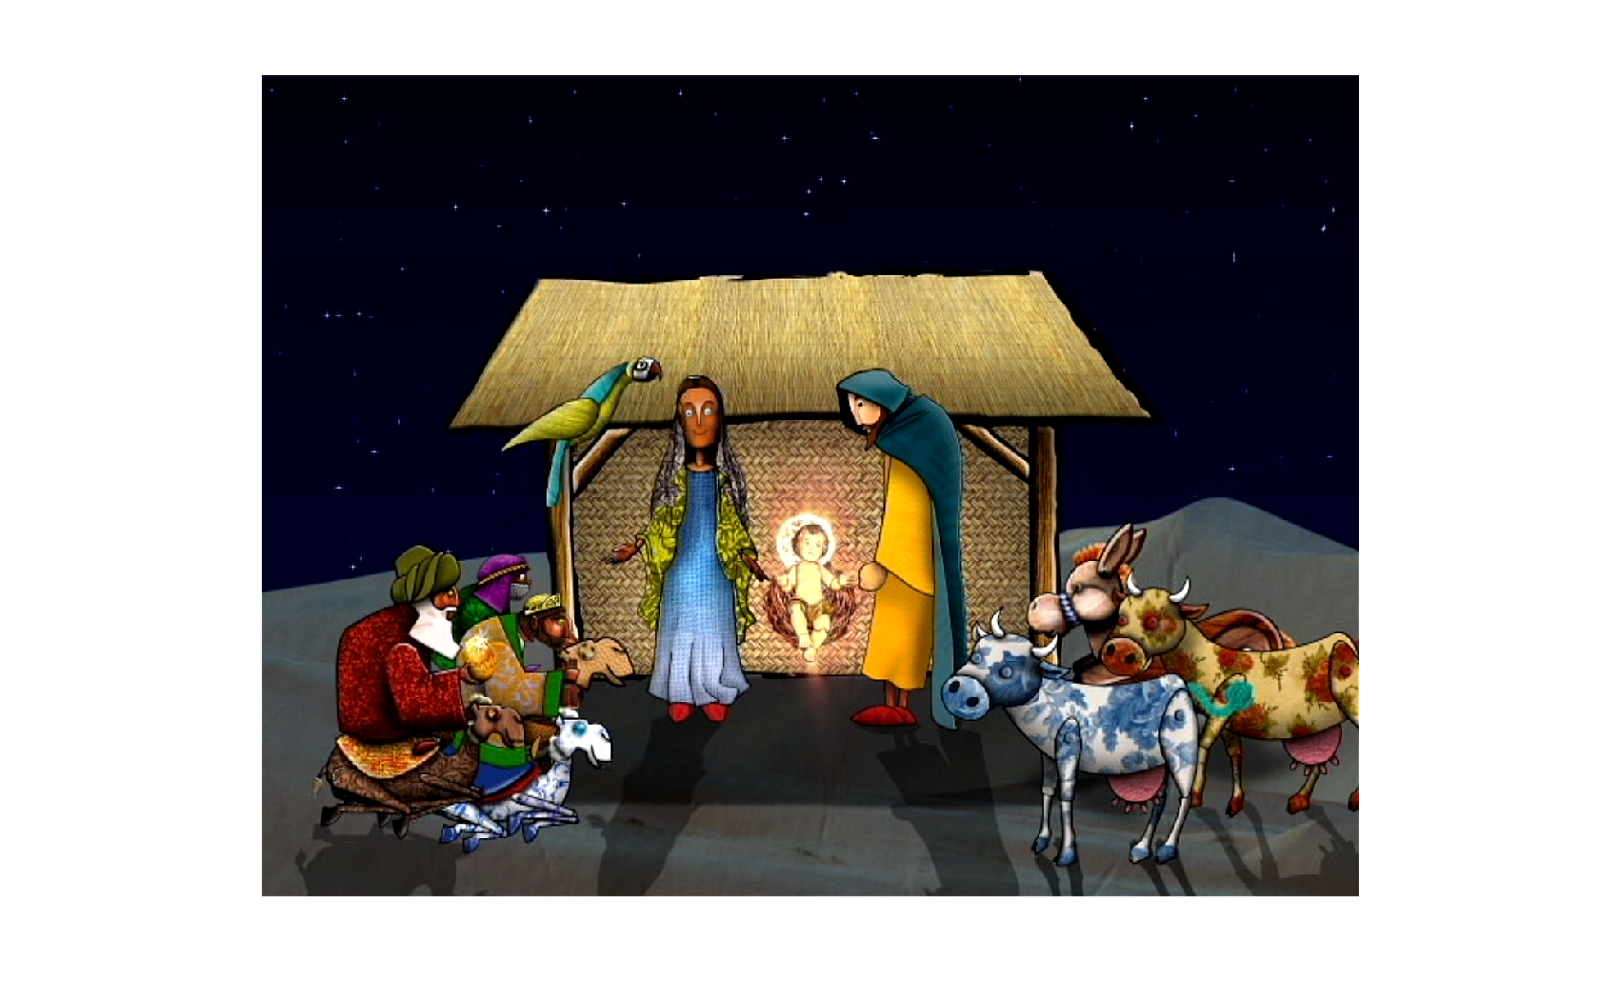 Nativity scene - illustration, characterdesign - ivandisimoni | ello